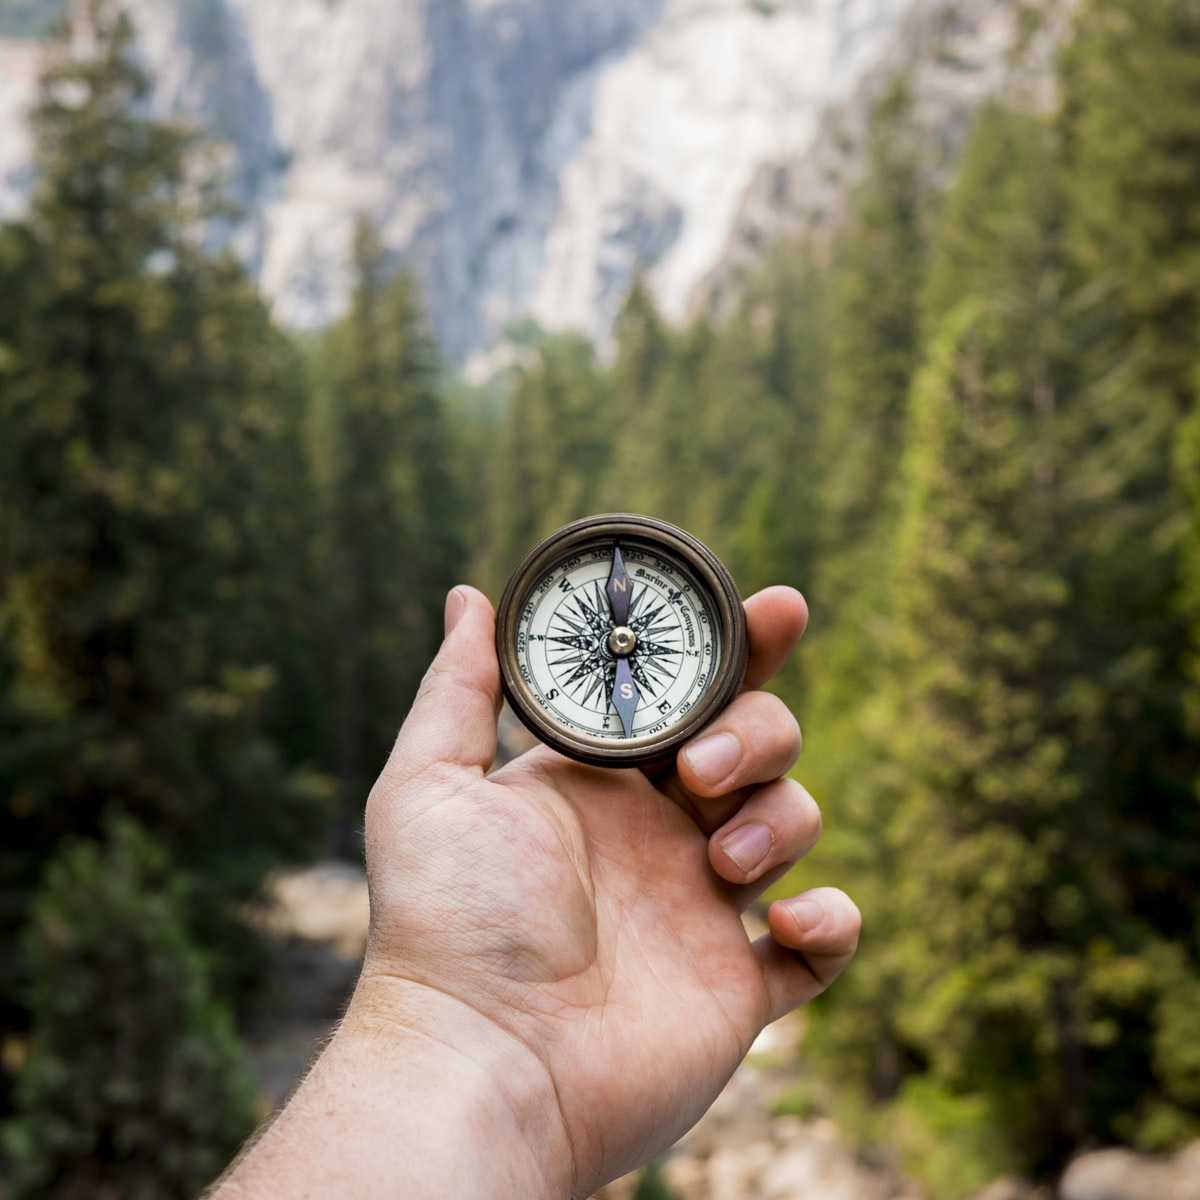 Hand holding a compass in the wilderness